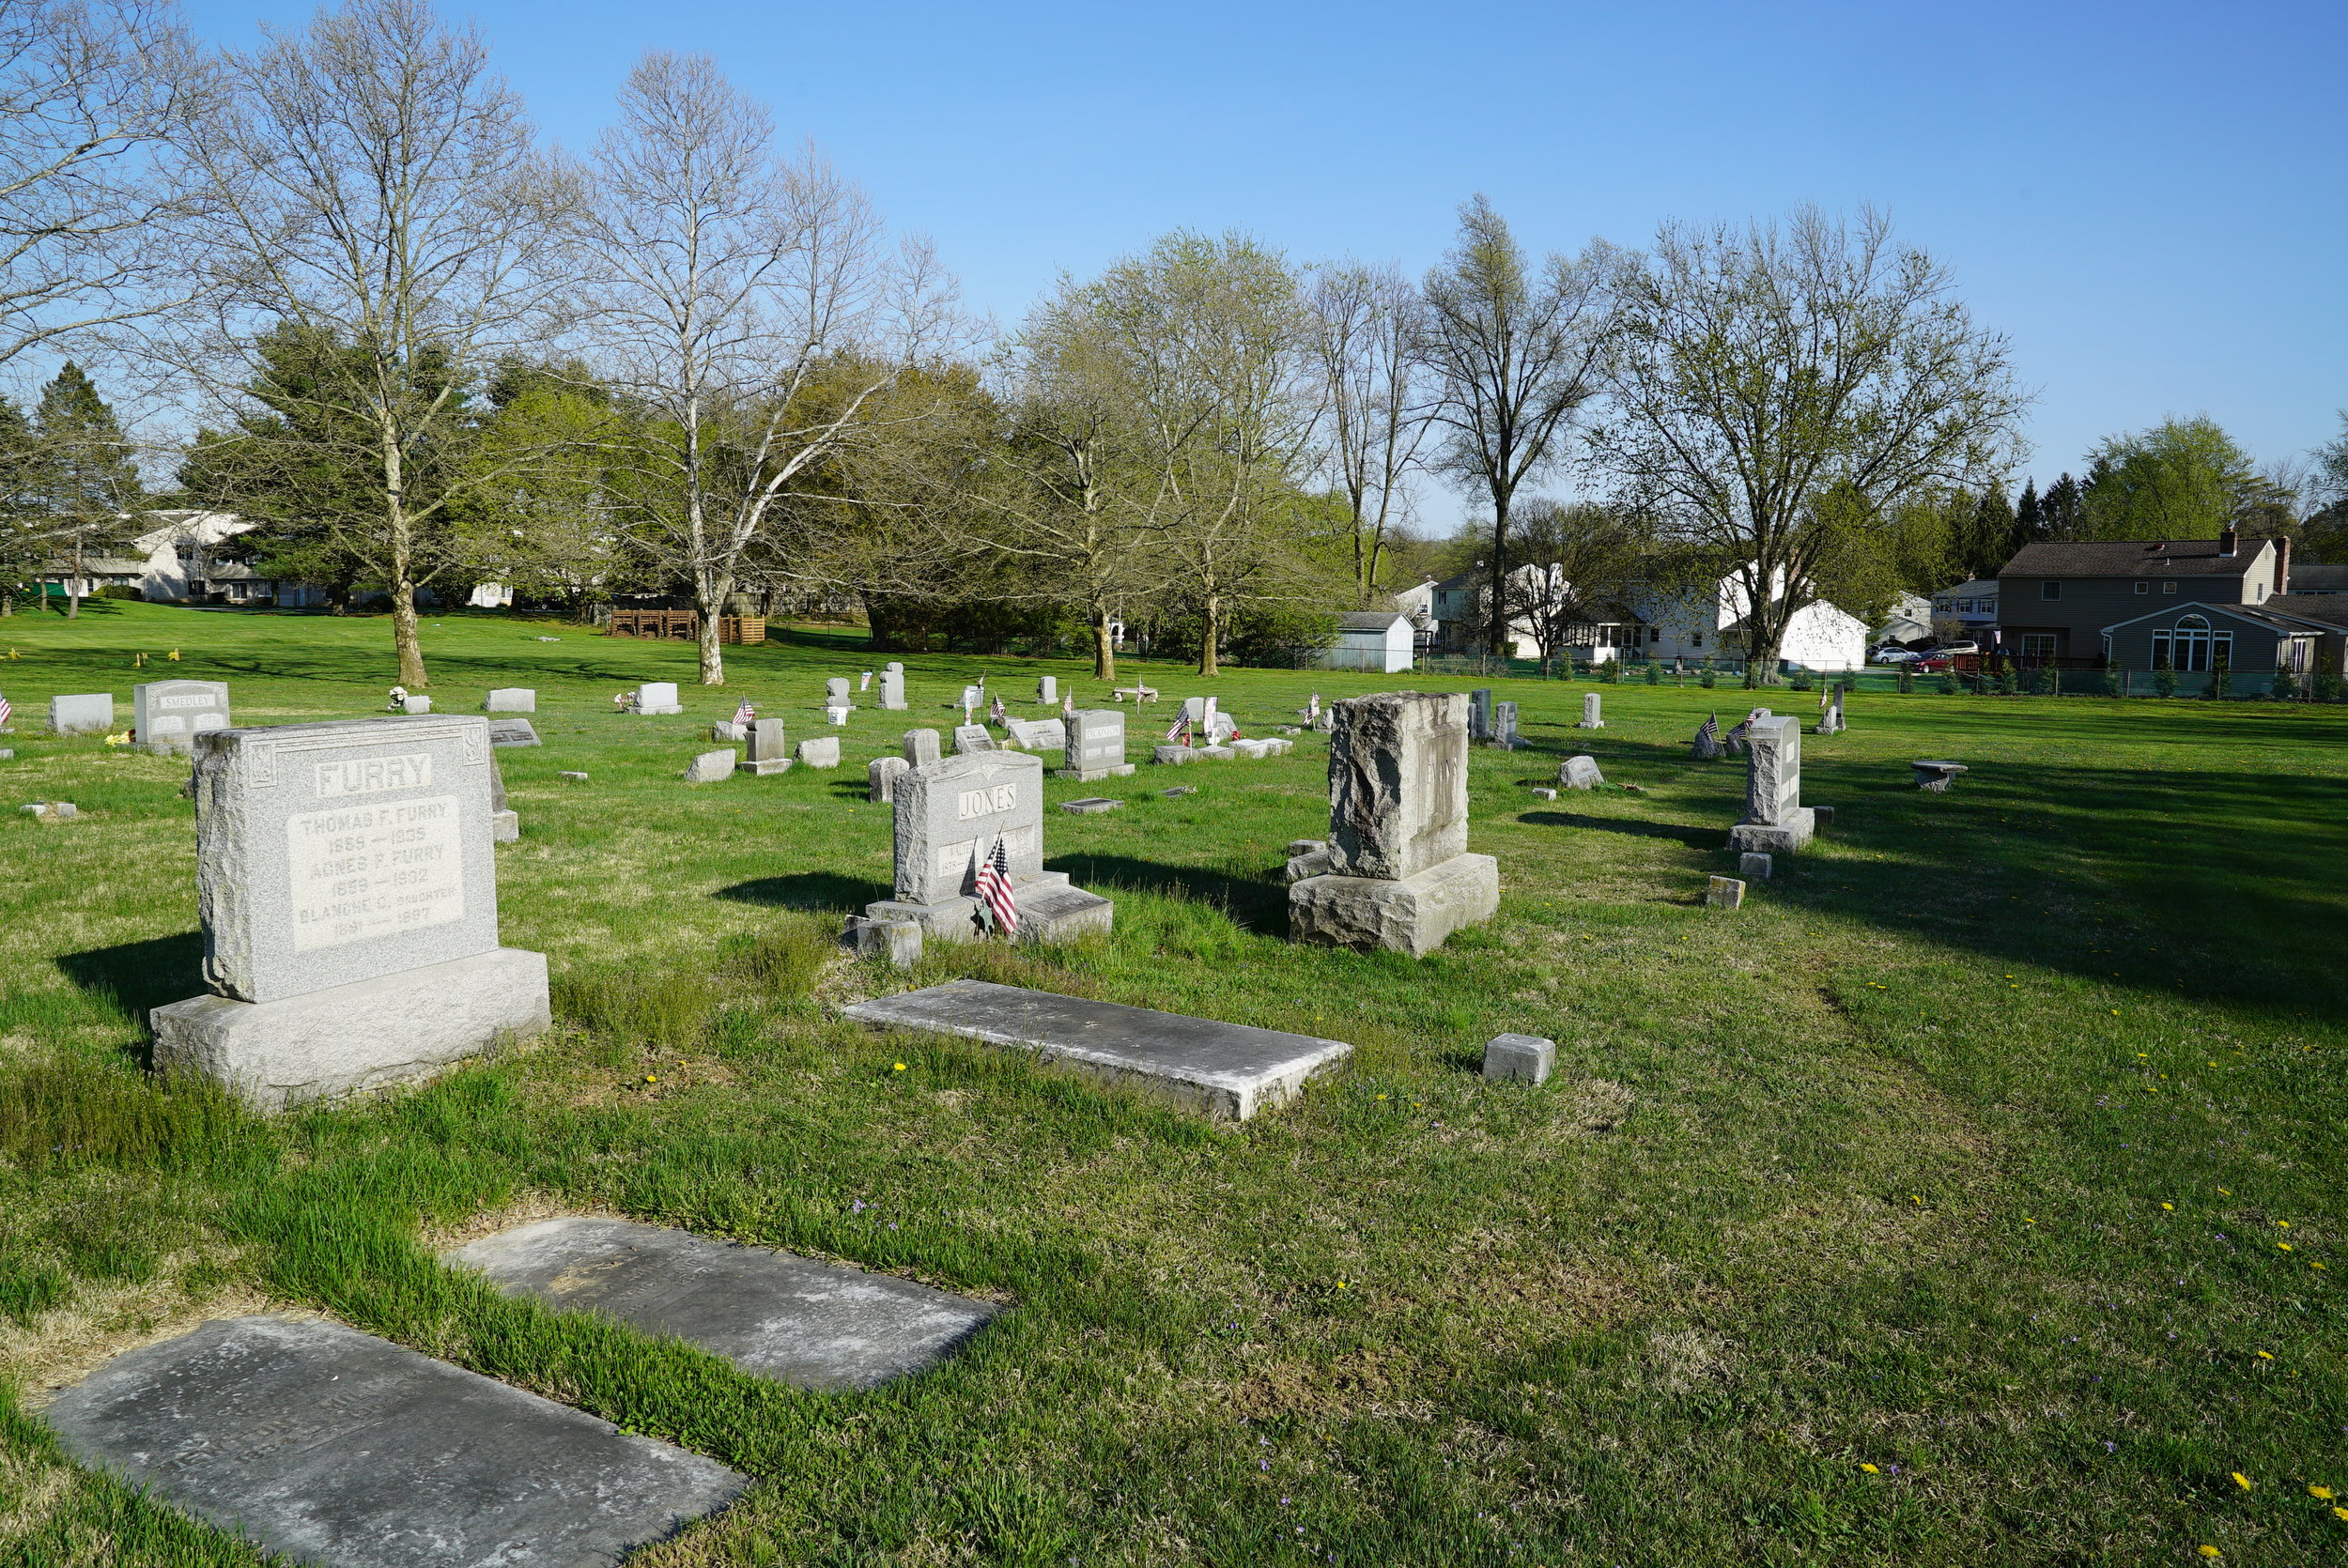 St. Paul's Lutheran Church Cemetery. Lionville, Pennsylvania.